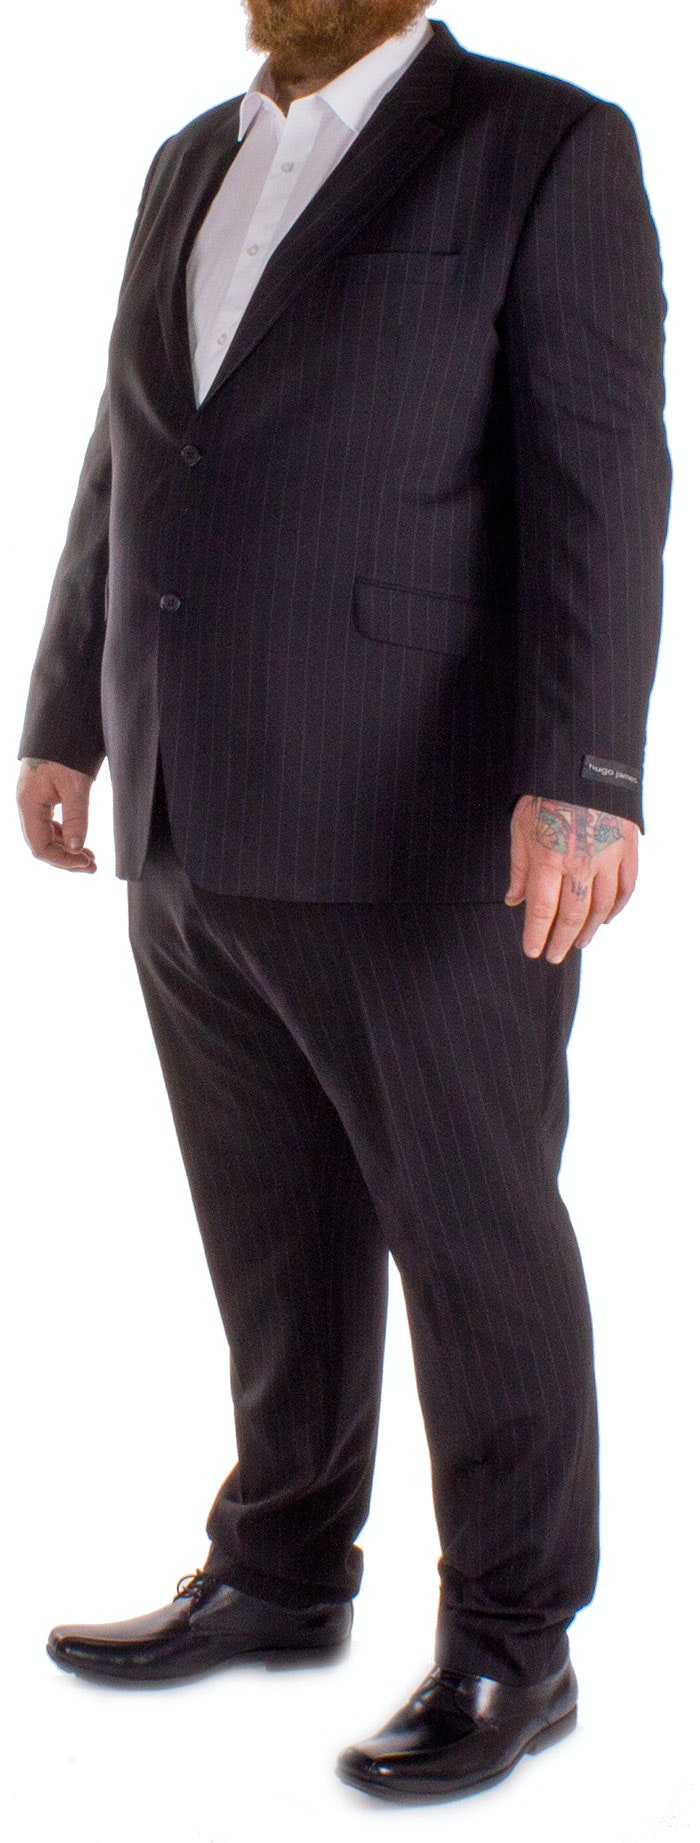 Hugo James Pin Stripe Suit Black